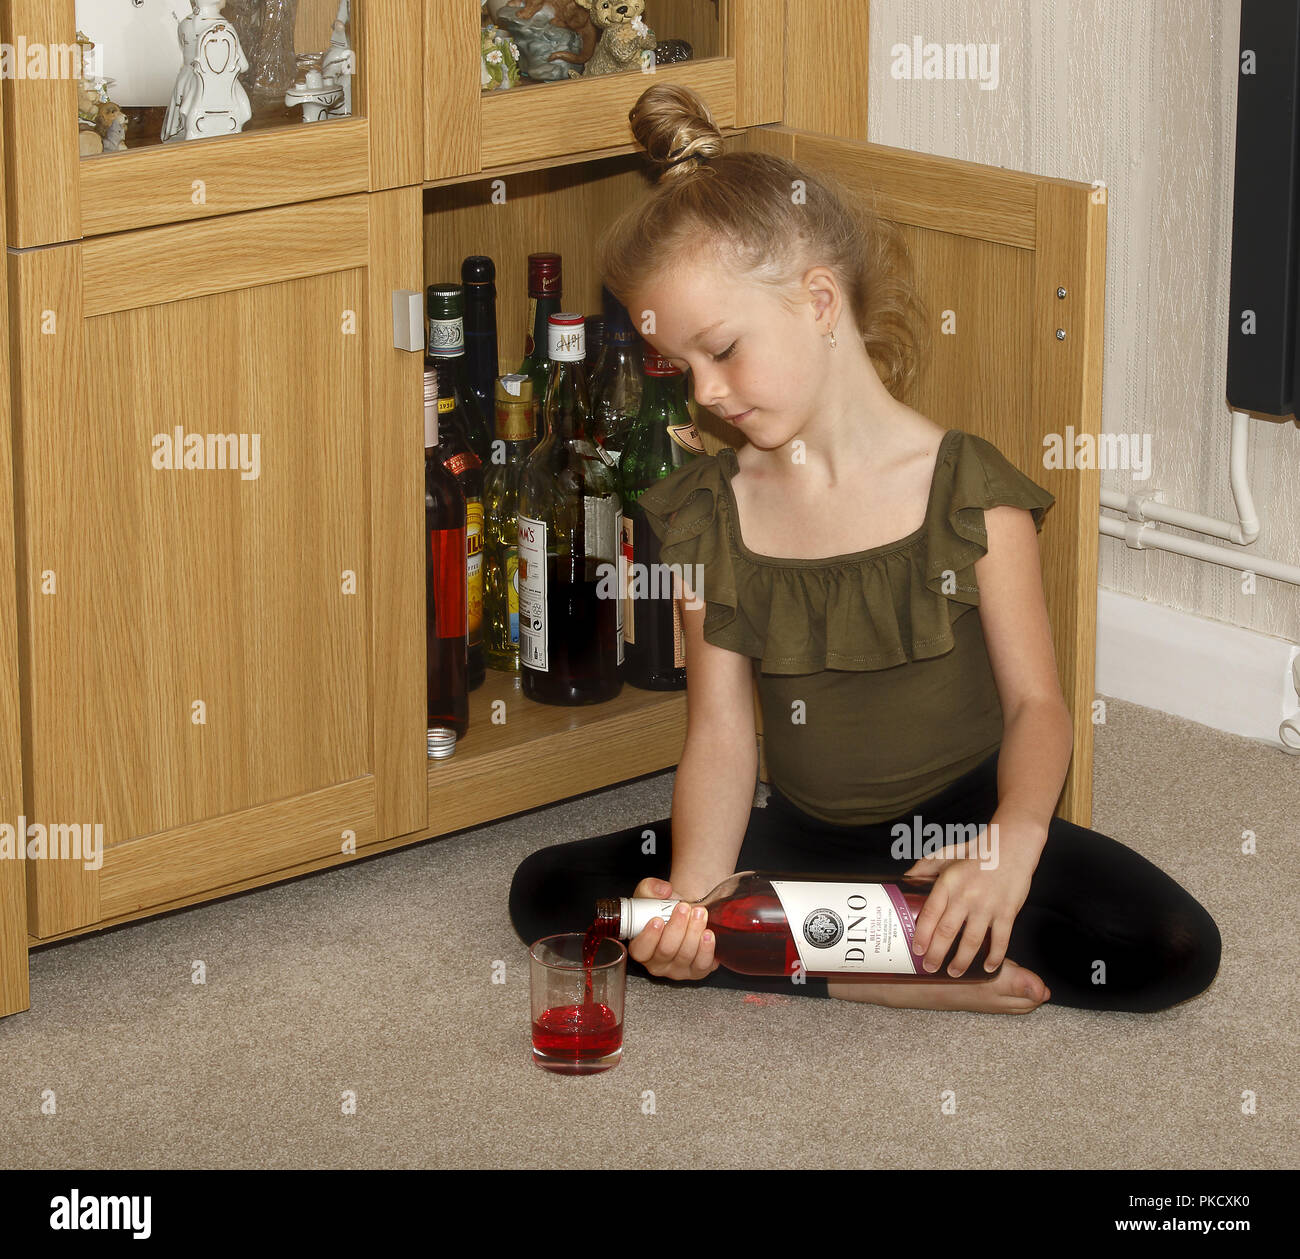 A six year old girl helping herself to wine from a drinks cabinet - Stock Image